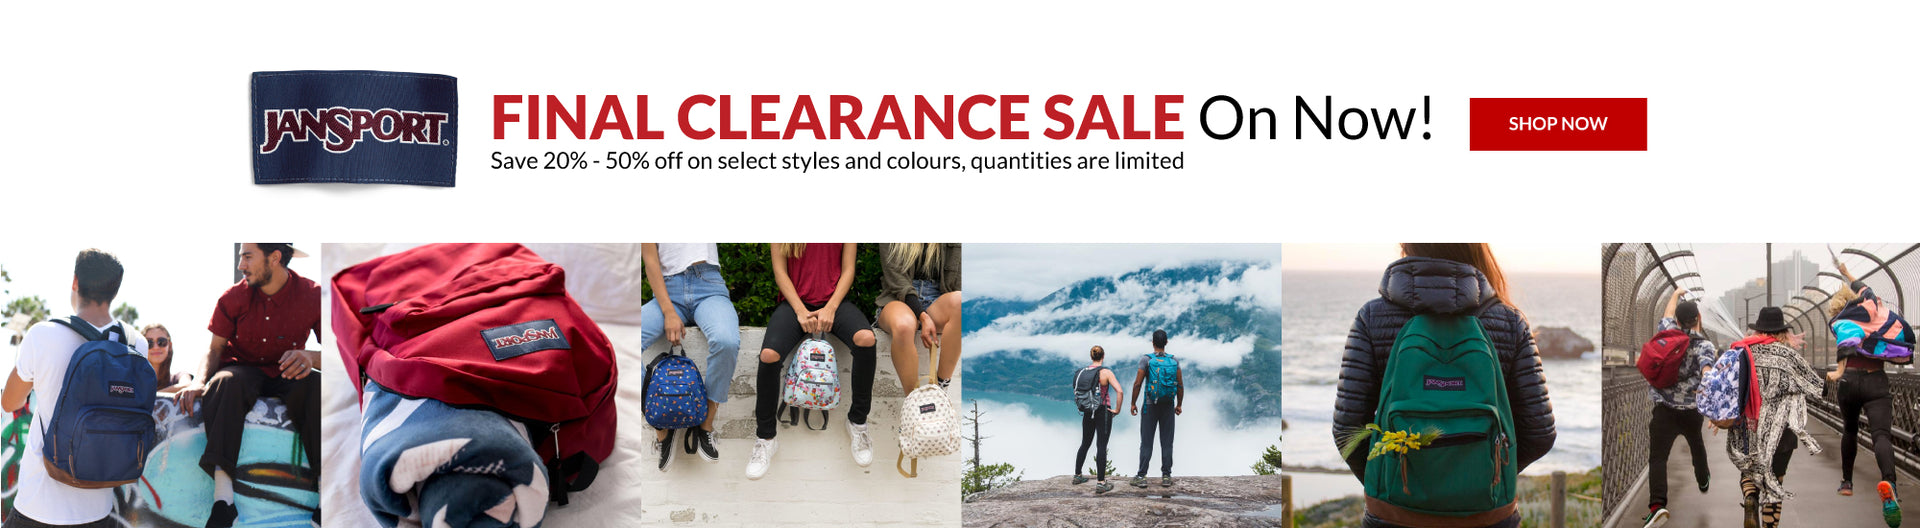 JanSport Final Clearance Sale - Canada Luggage Depot